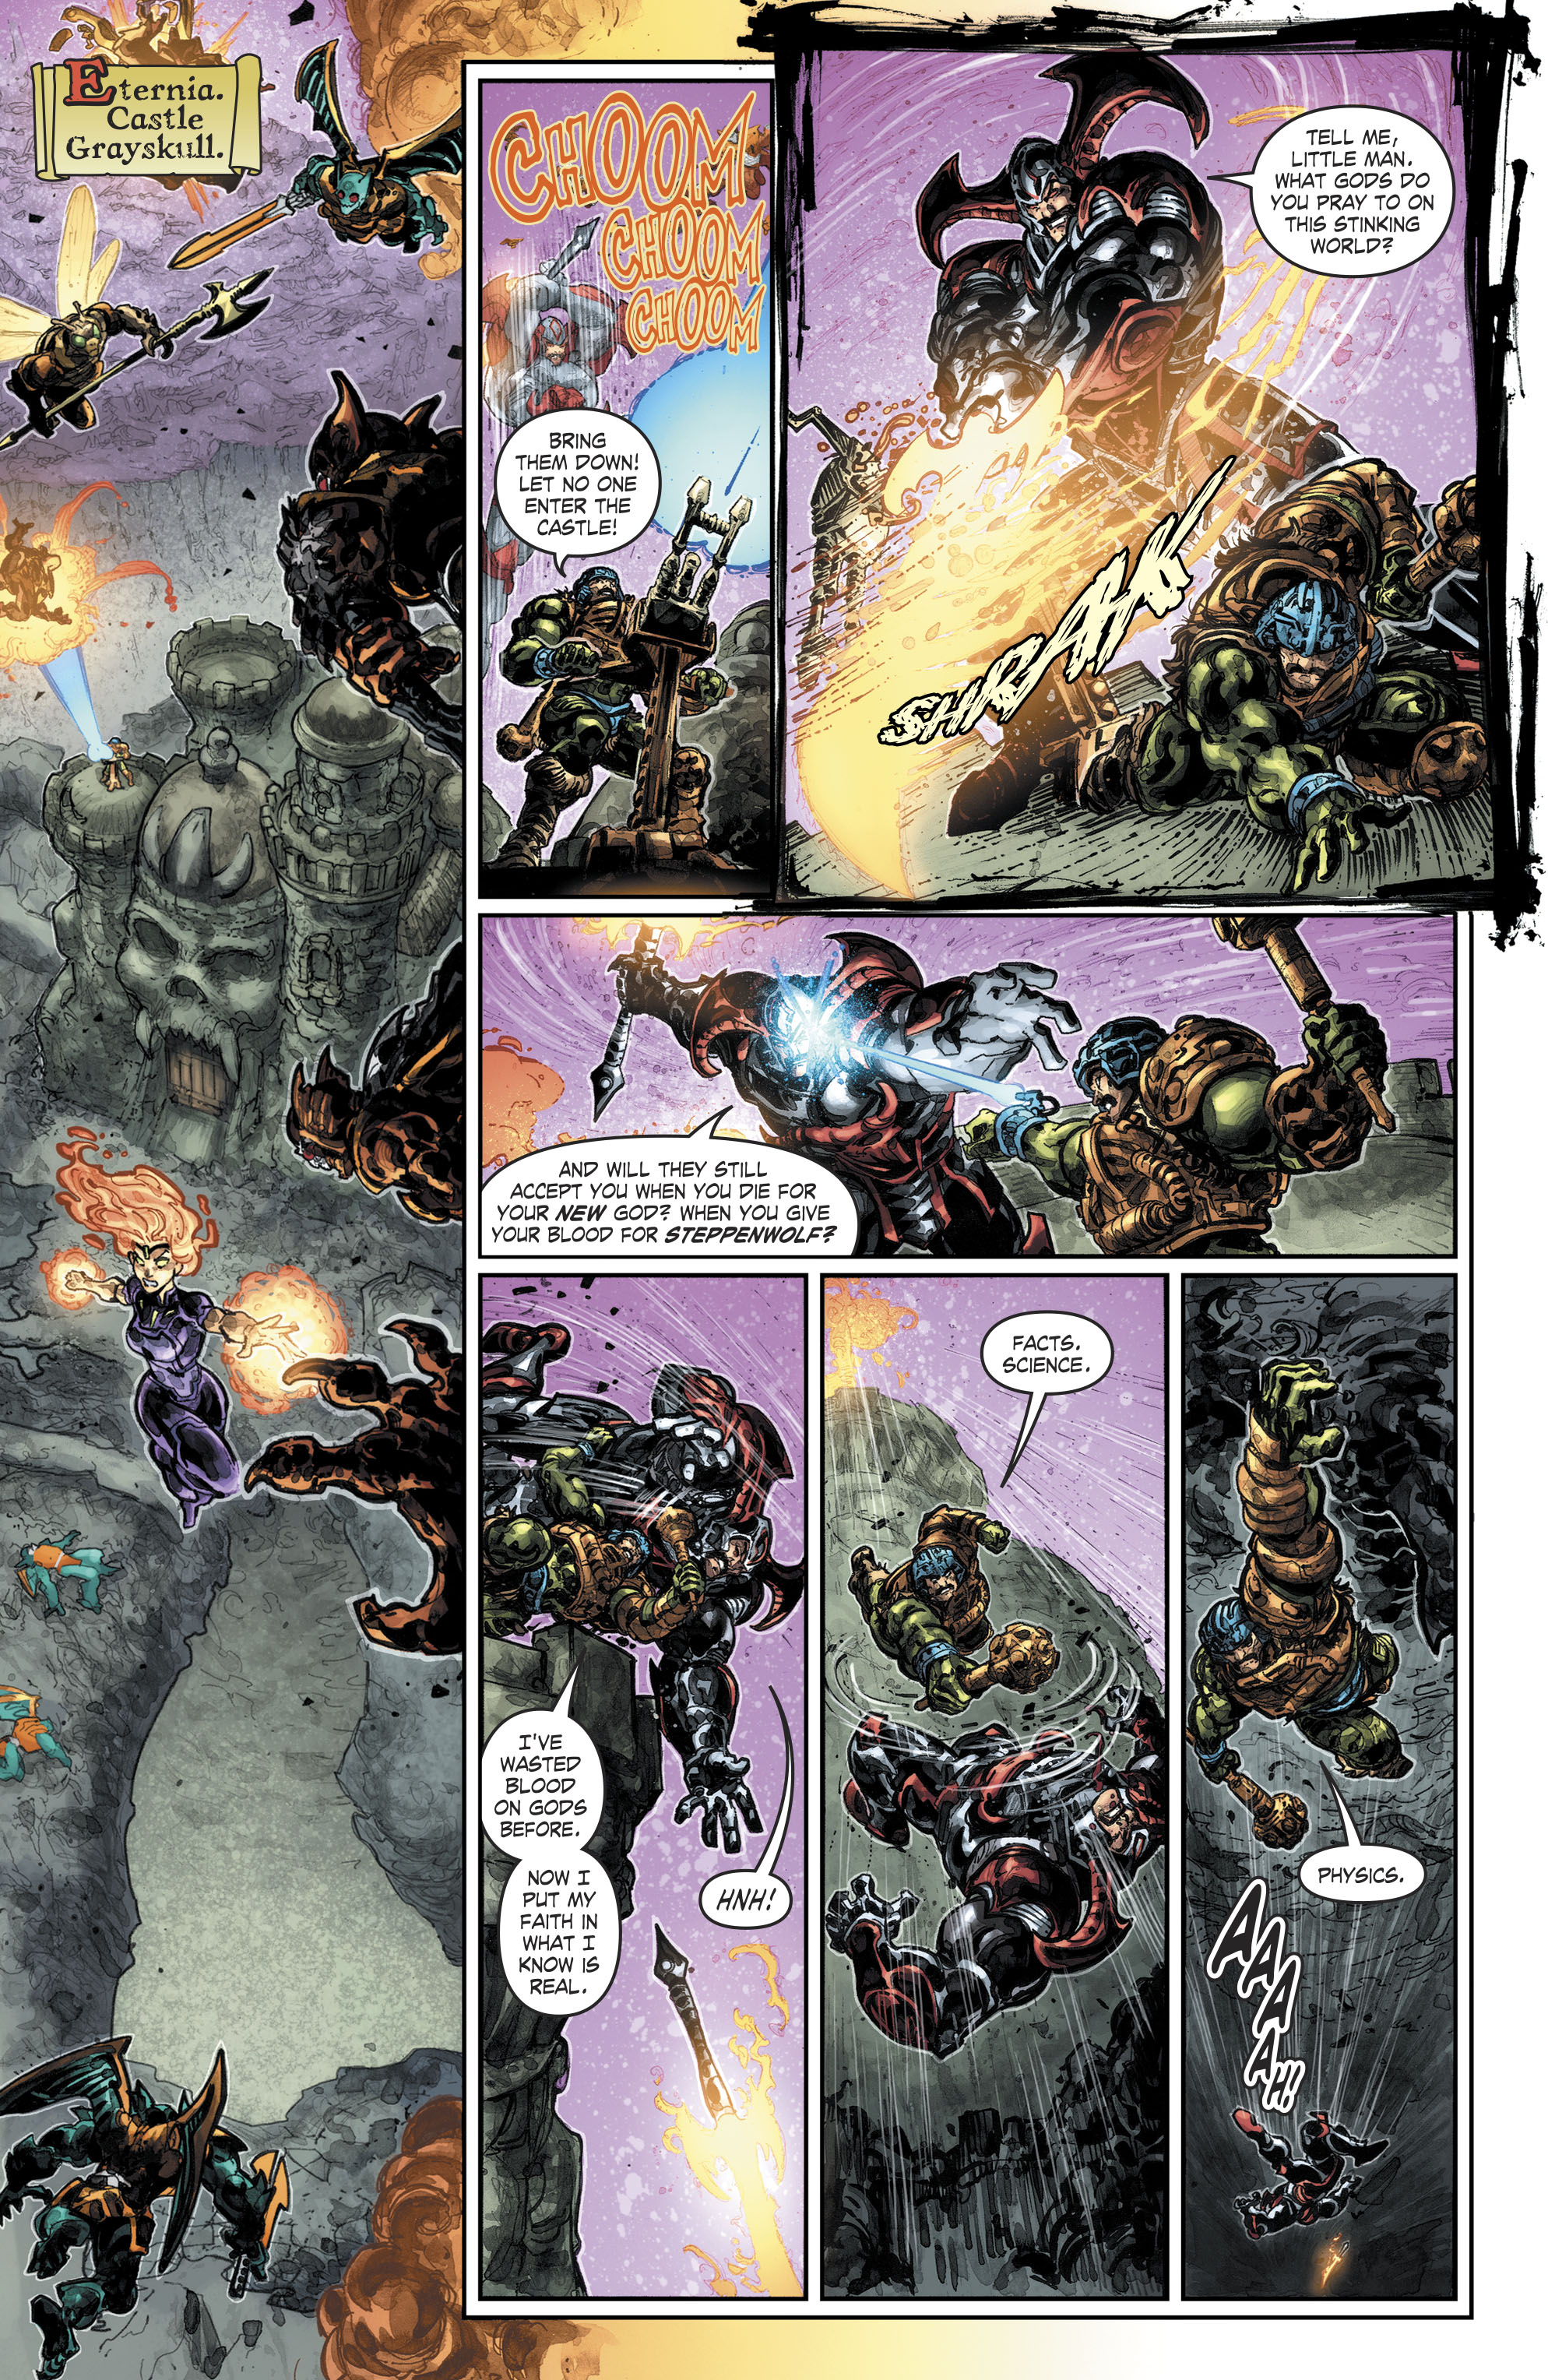 Injustice Vs Masters of the Universe 004 006